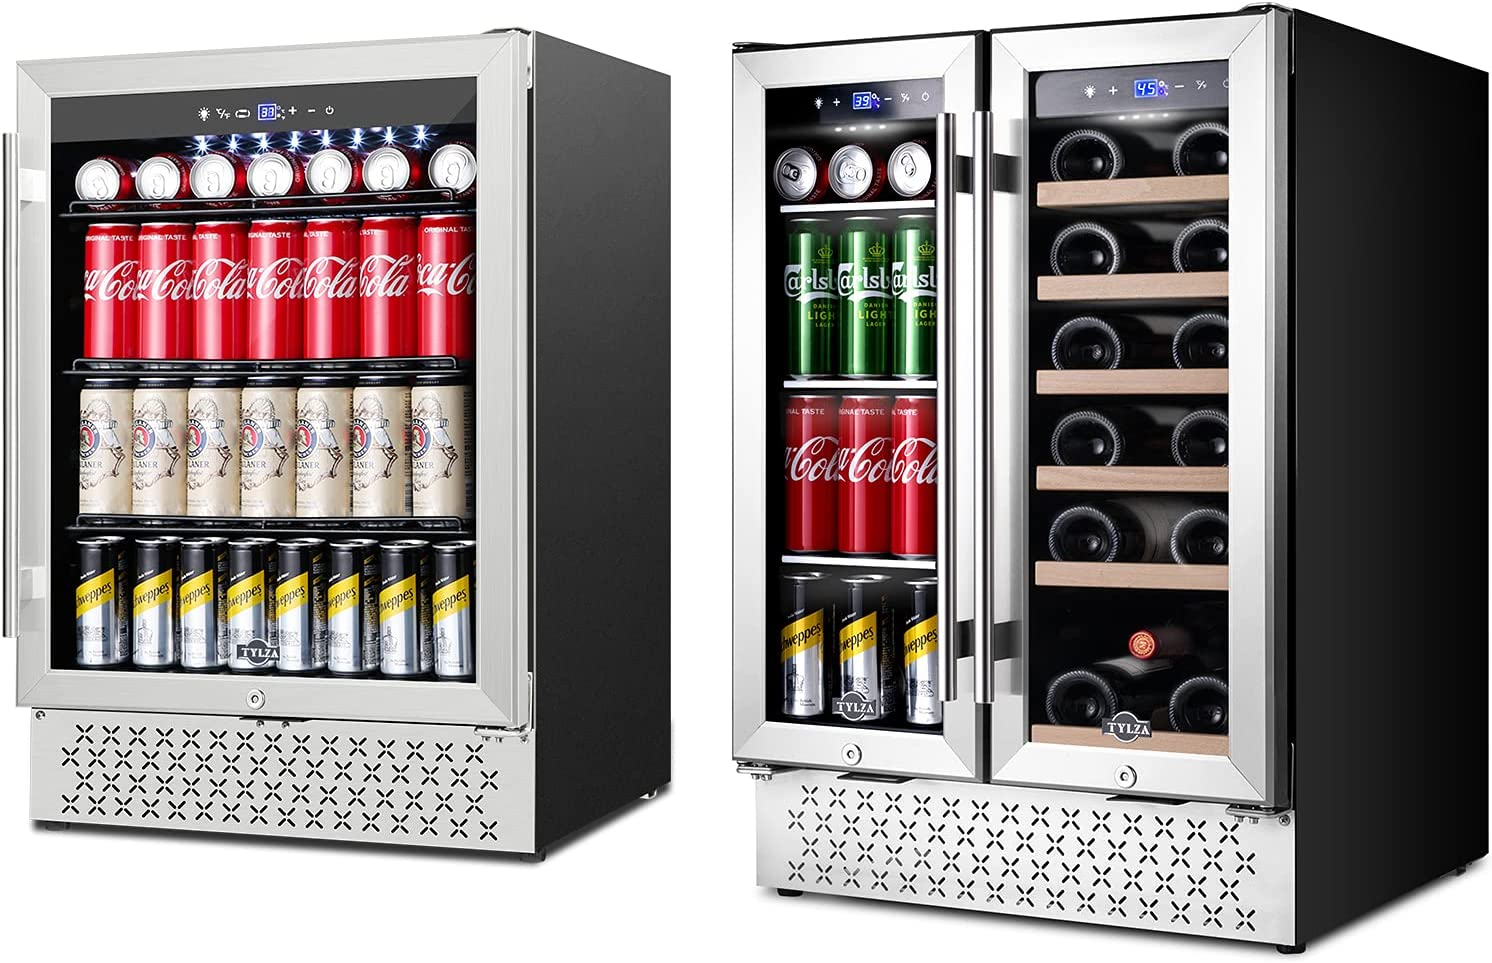 24'' Wine and Beverage Cooler Refrigerator Built-in or Freestanding with Glass Door & 190 Can 24'' Beverage Refrigerator Built-in/Freestanding Refrigerator with Stainless Steel and Advanced Cooling Co